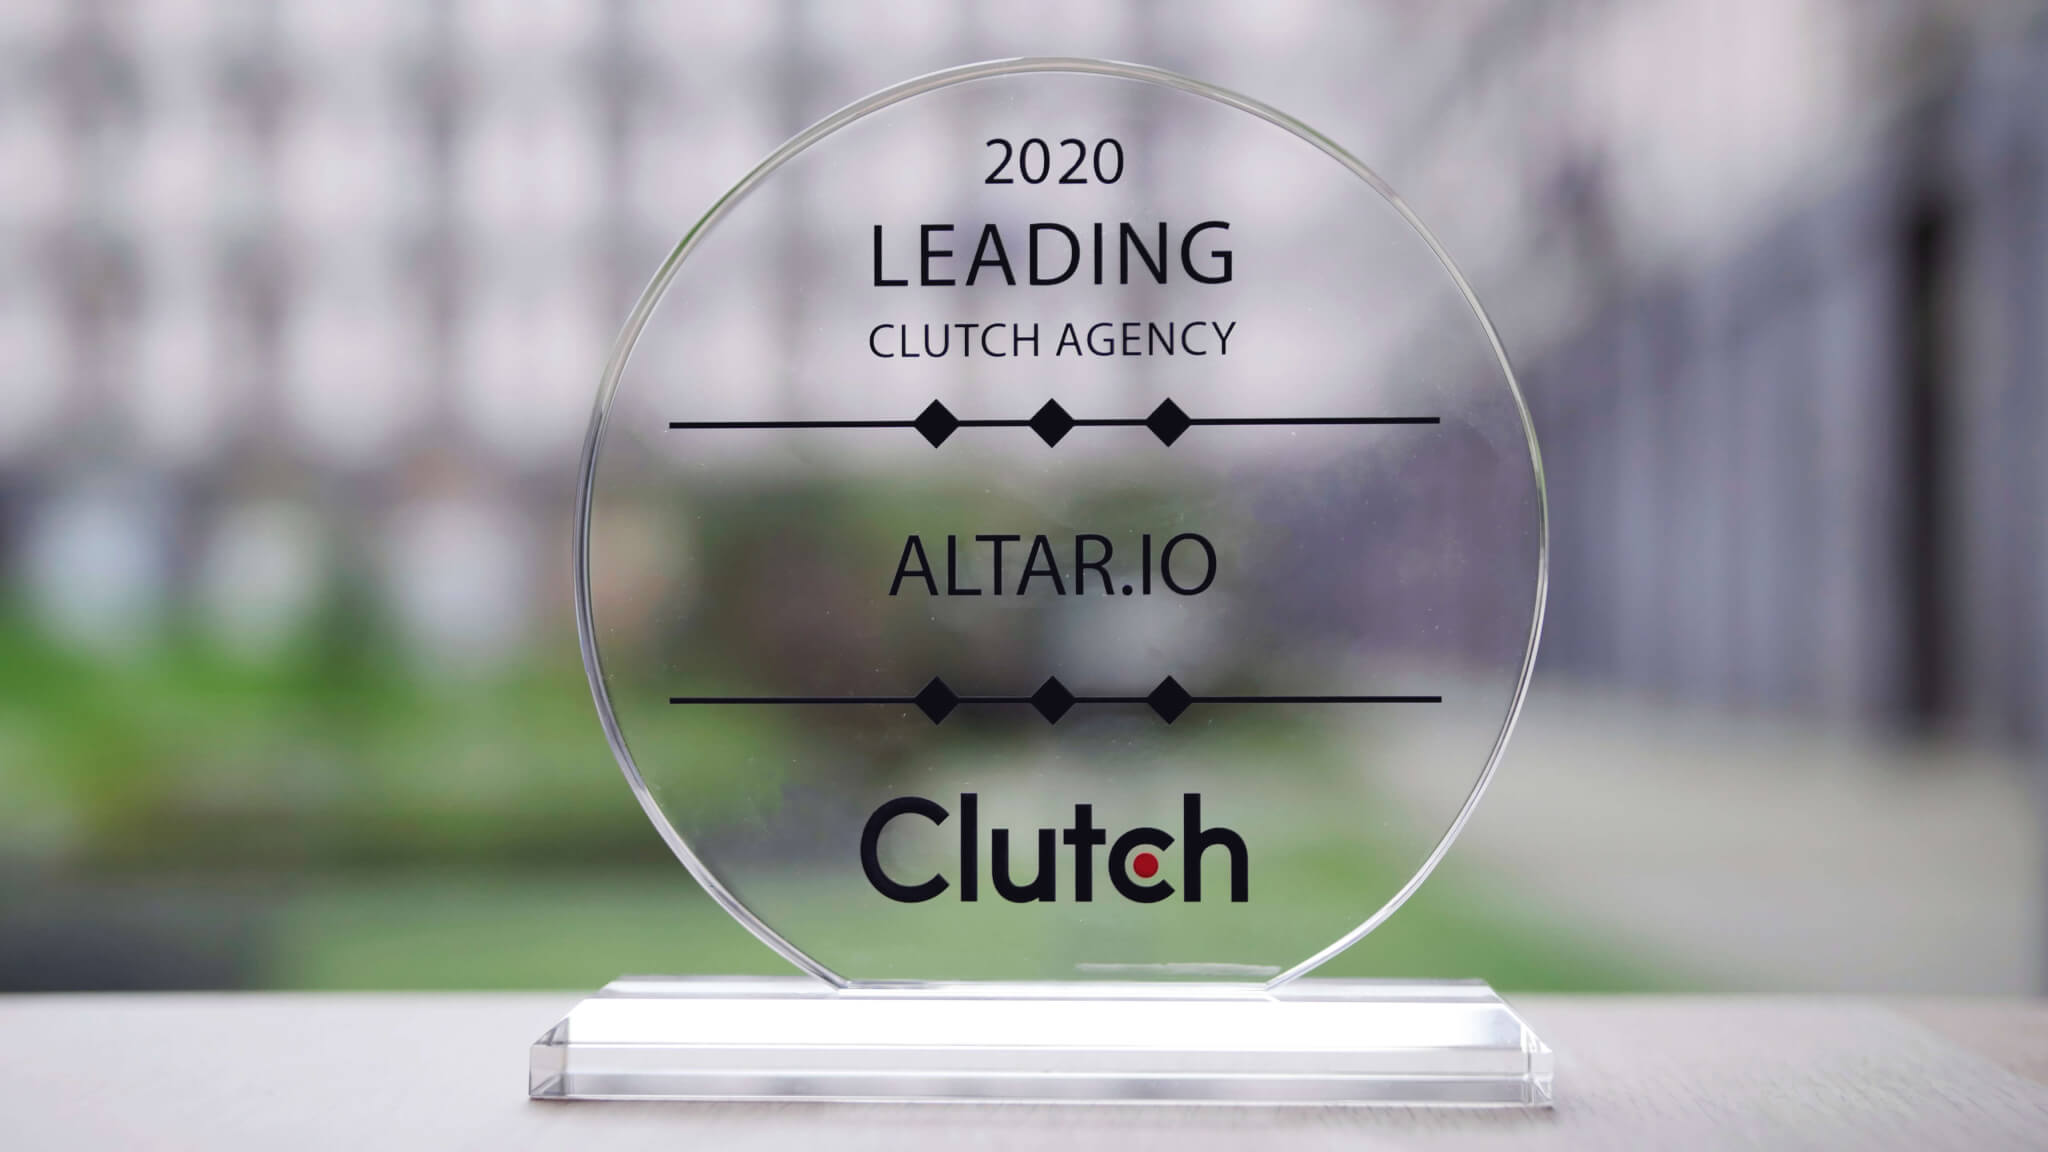 The Real Reason Why Altar.io Was Named A Top Agency In 2020 - The Award